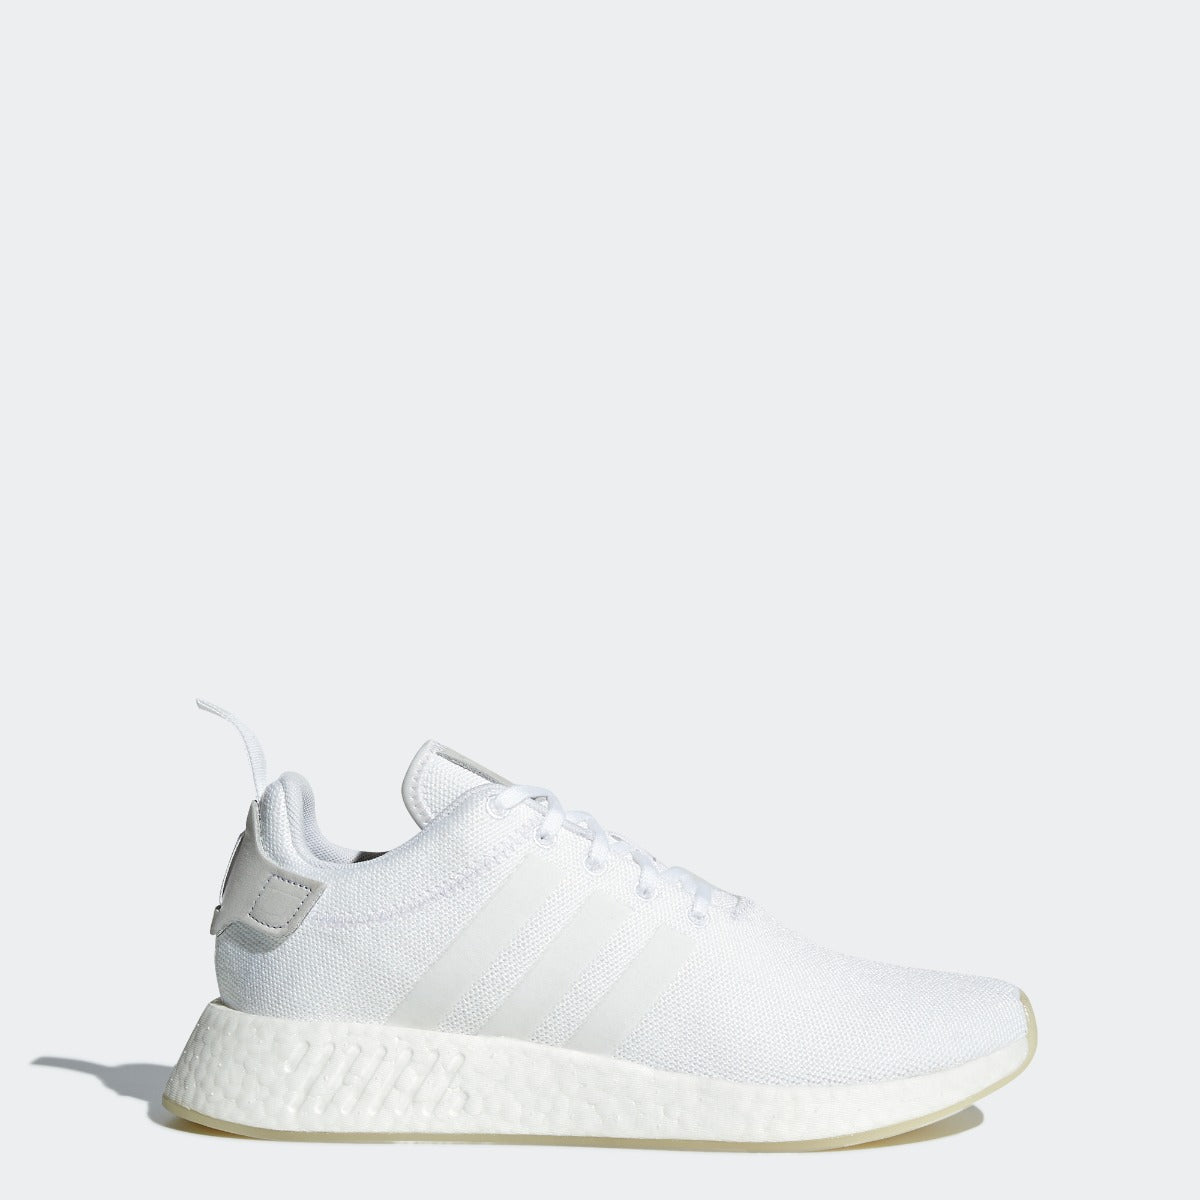 Men's adidas NMD R2 Shoes Cloud White CQ2401 | Chicago City Sports